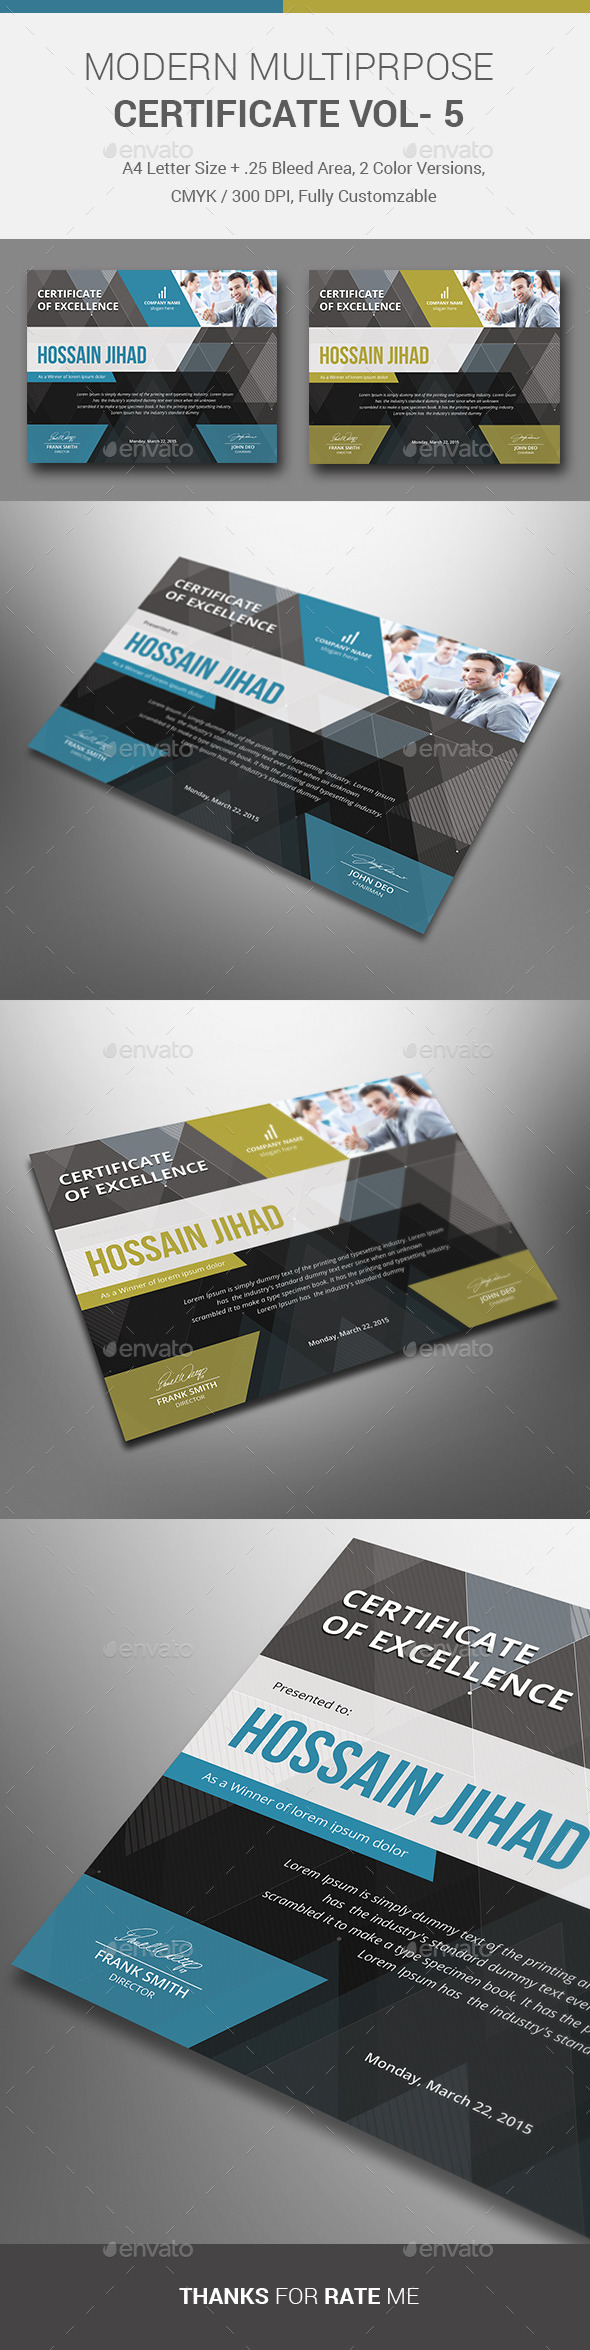 Certificate templates designs from graphicriver page 31 yelopaper Image collections